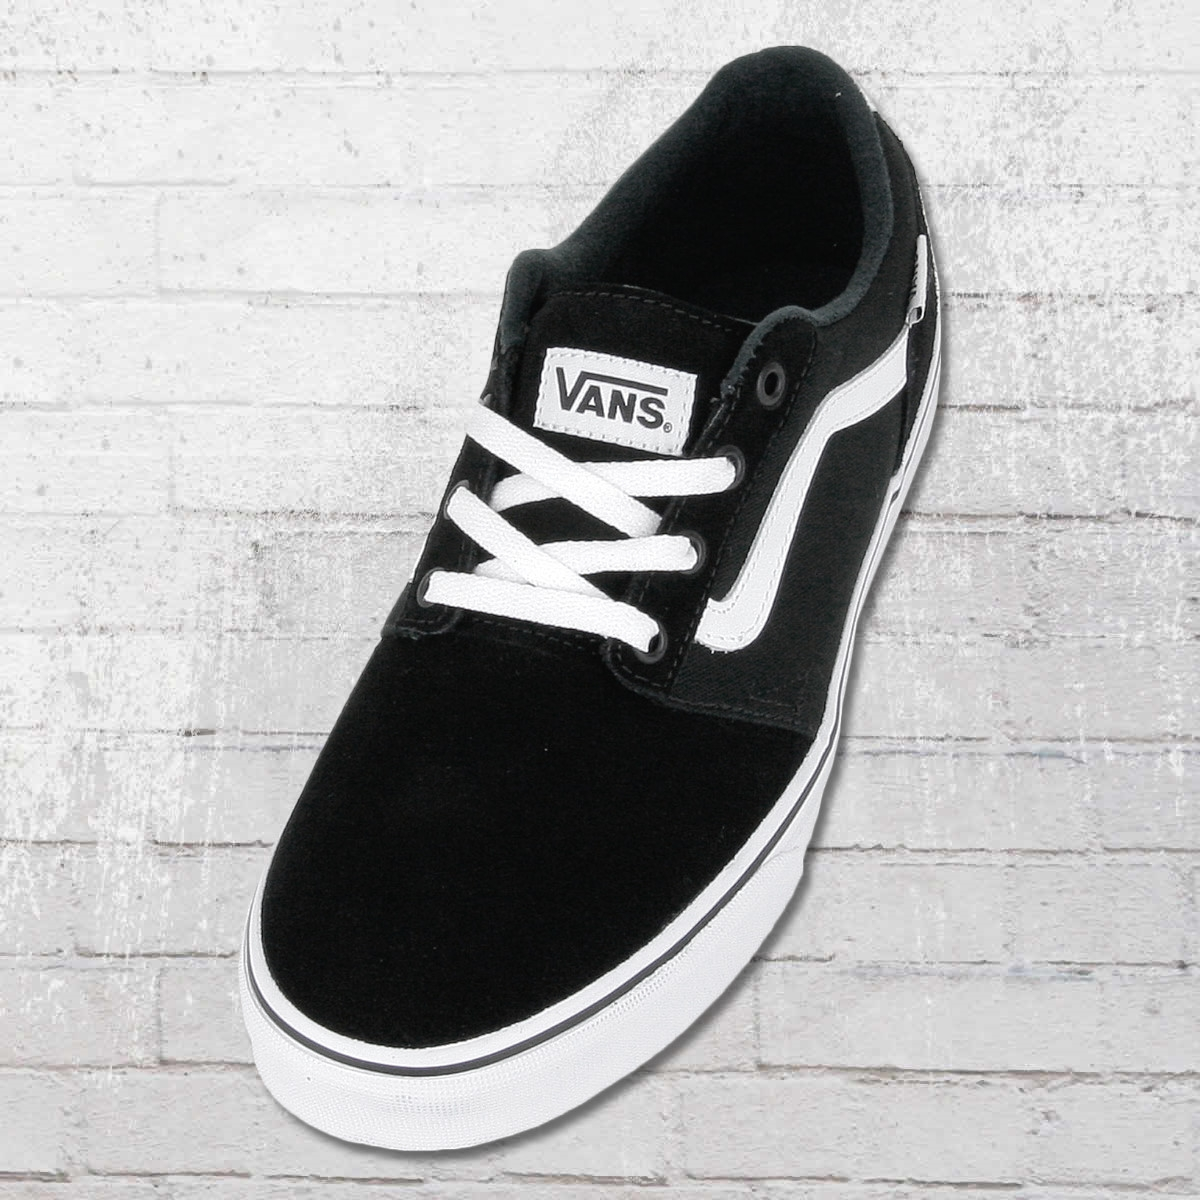 order now vans shoes chapman stripe suede canvas black white. Black Bedroom Furniture Sets. Home Design Ideas